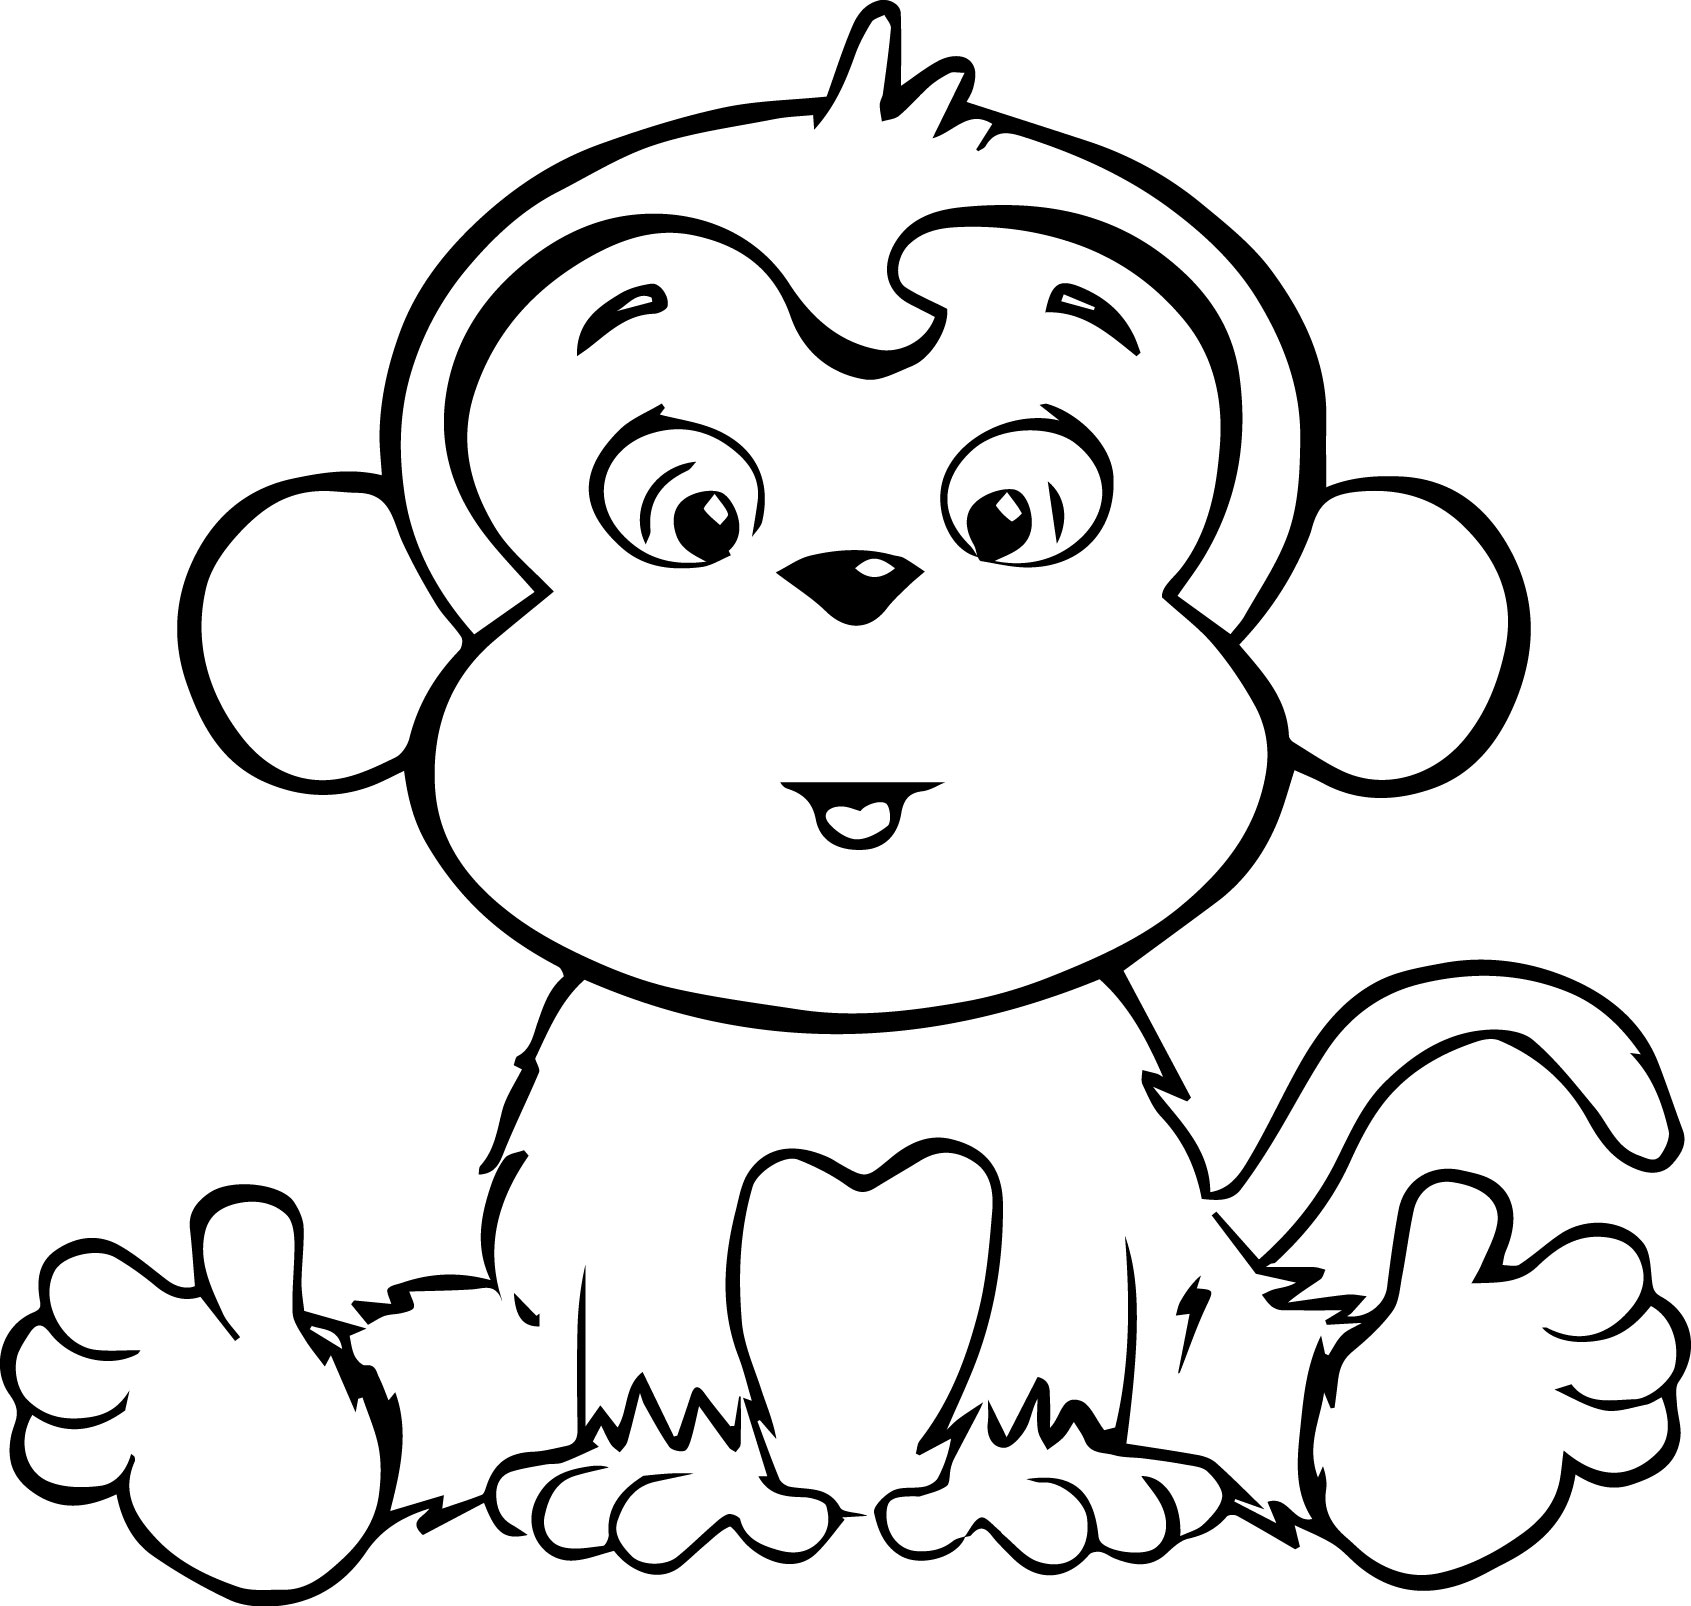 monkey pictures for coloring monkey coloring pages free download on clipartmag pictures for monkey coloring